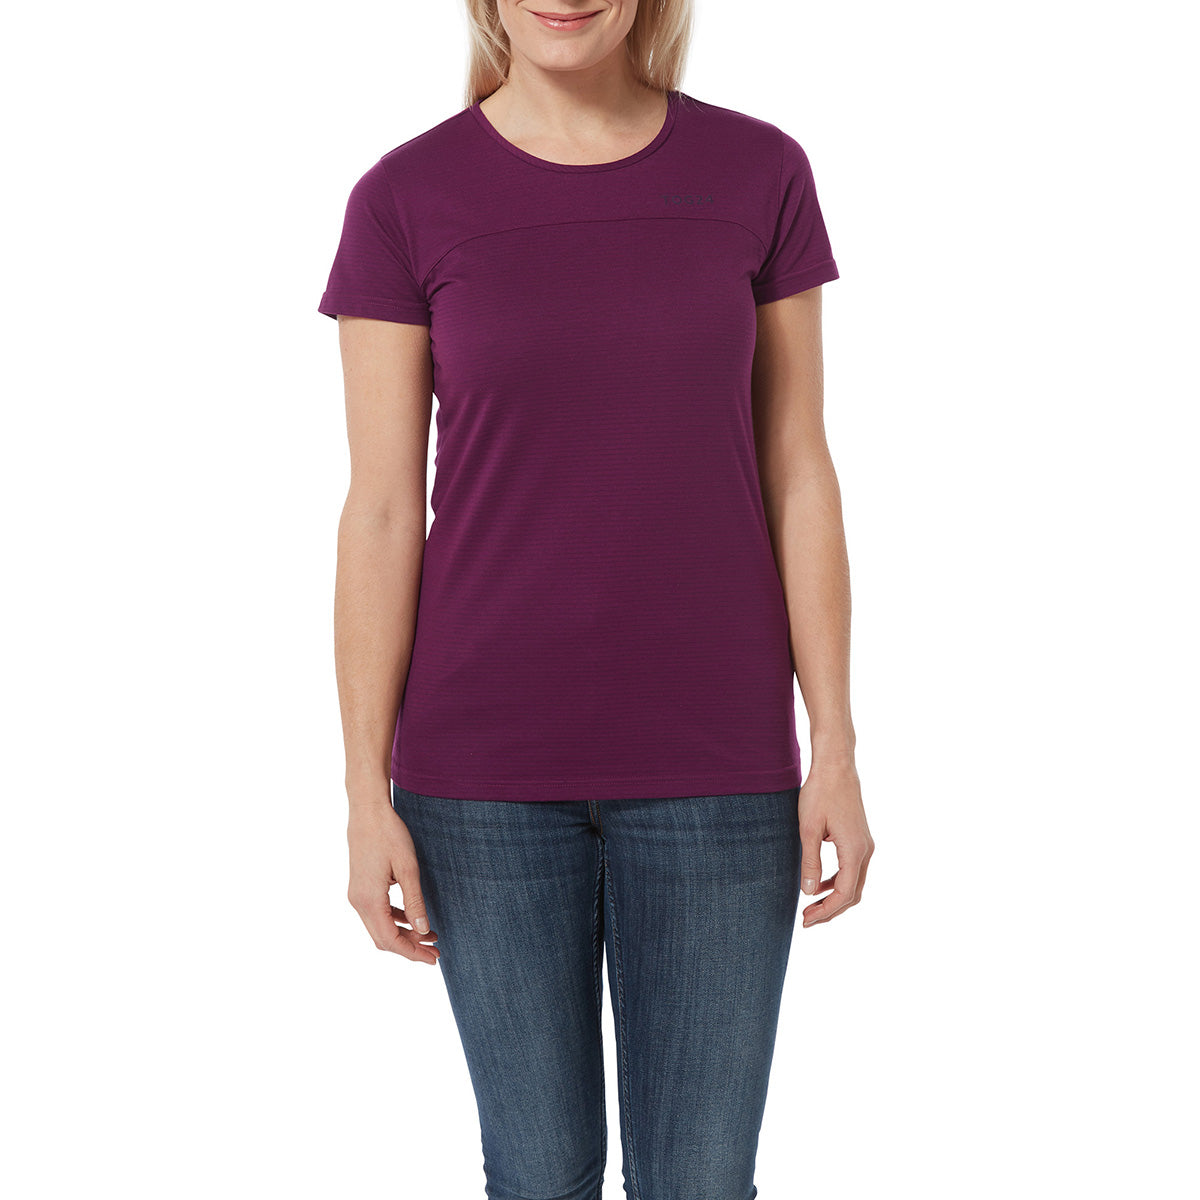 Caverly Womens Performance Stripe T-Shirt - Mulberry